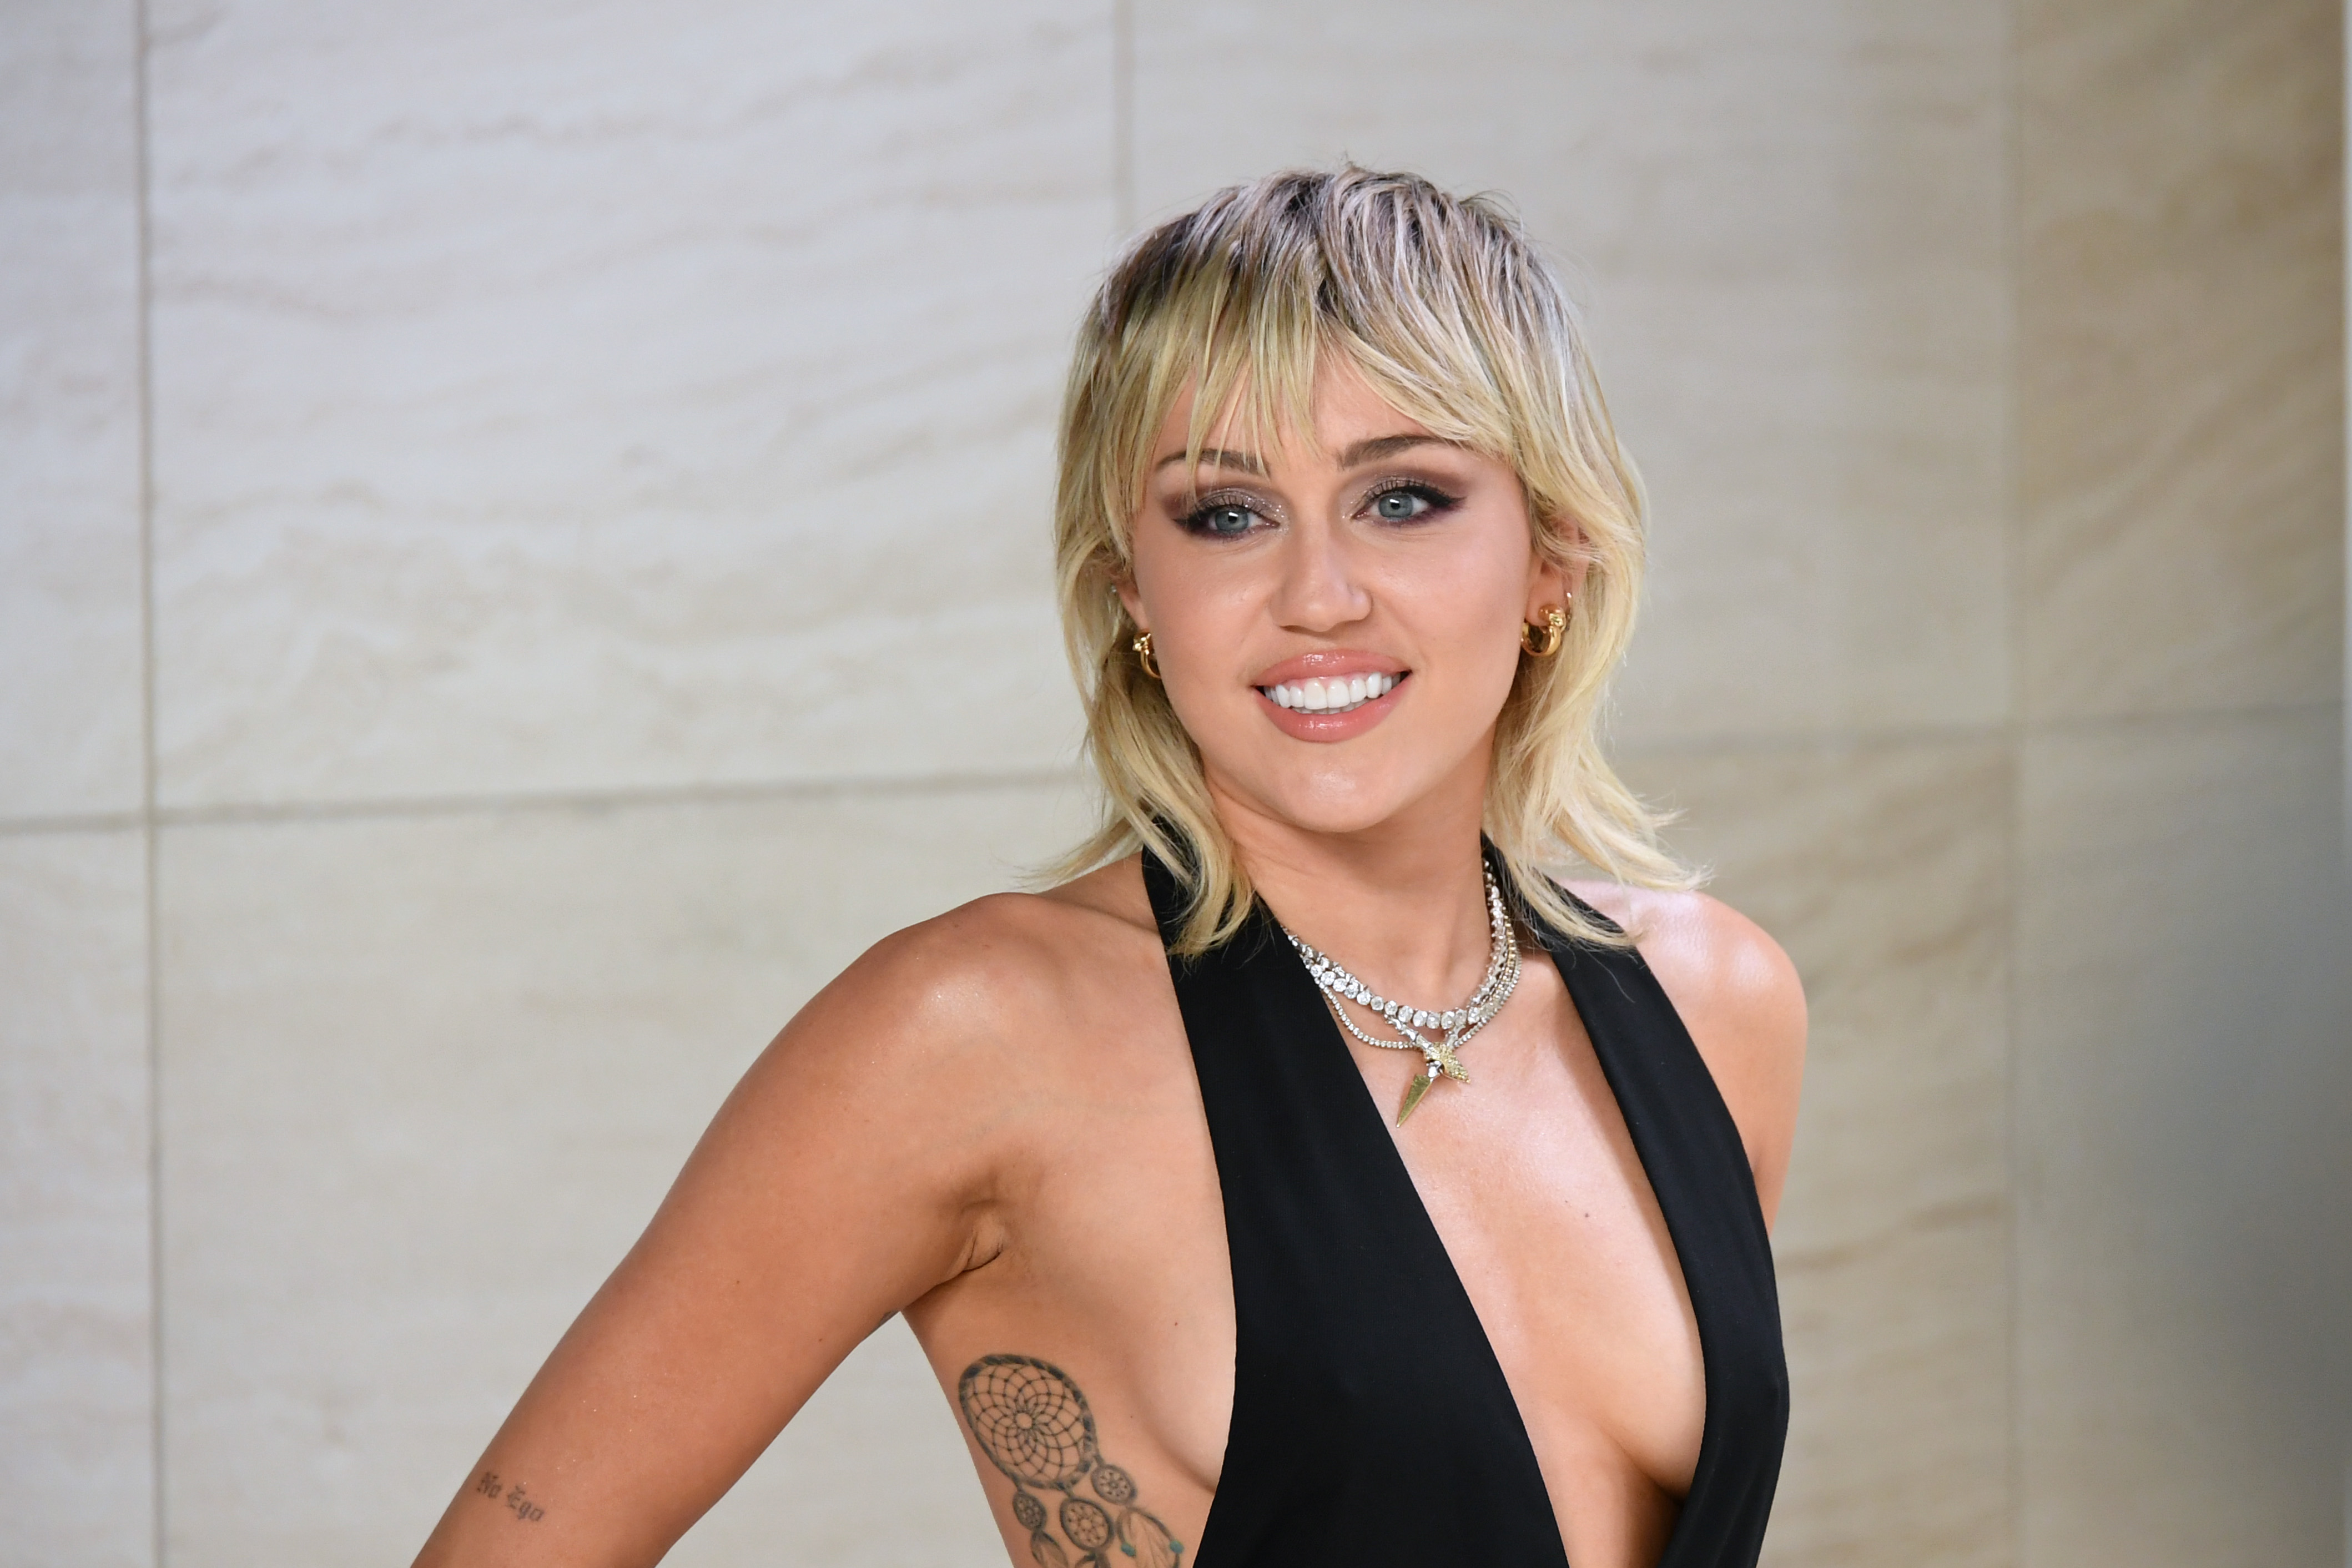 Miley Cyrus says hair became a 'monitor' for her sanity, sobriety